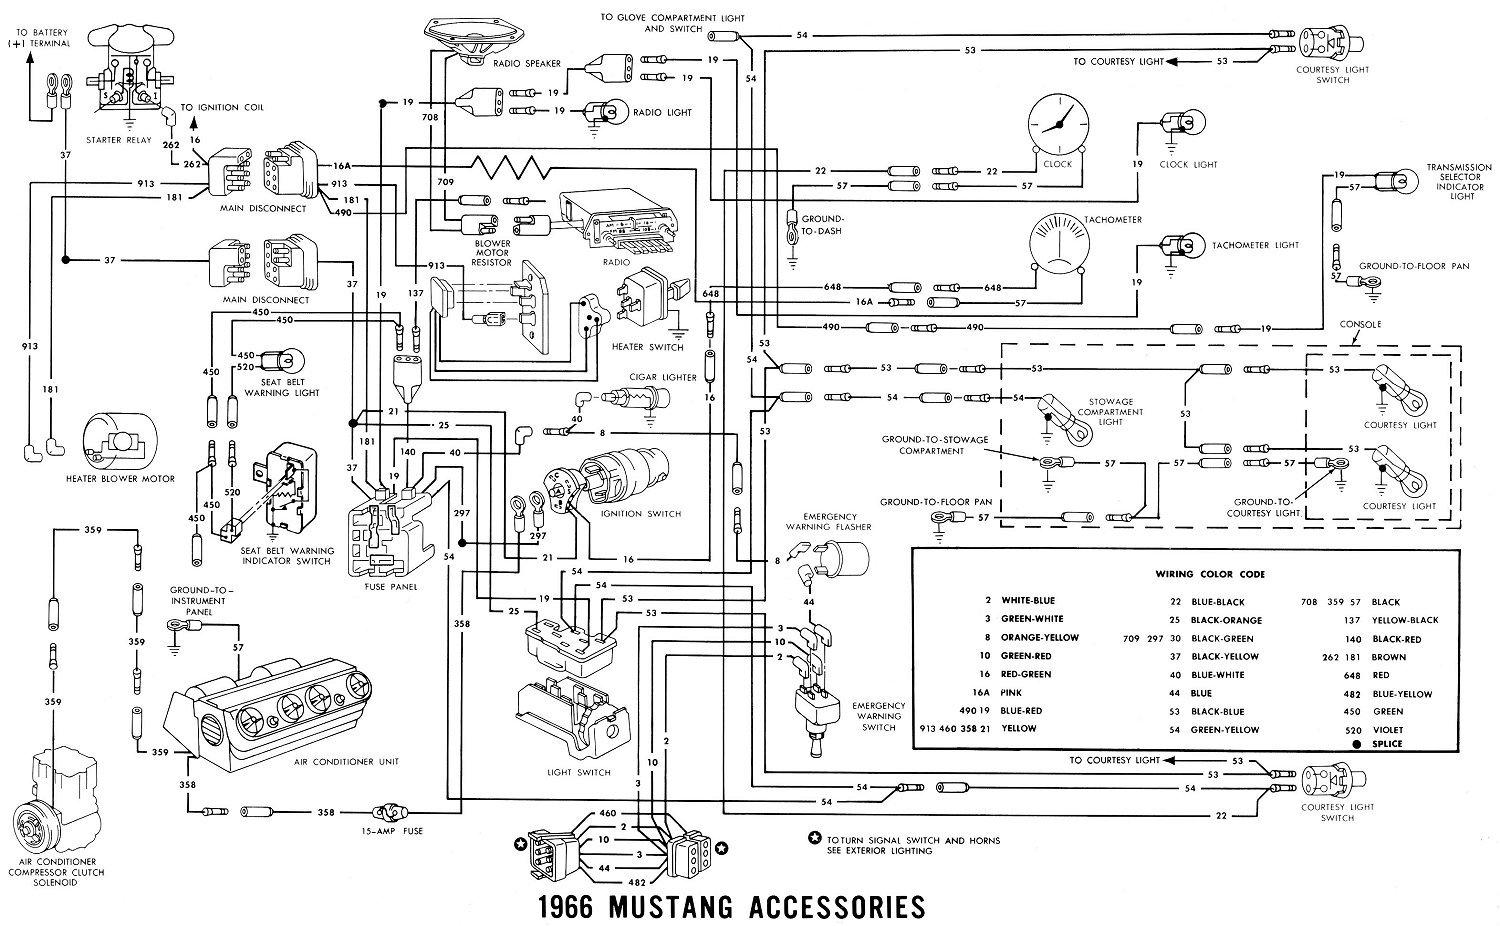 66acces1 1969 mustang dash wiring diagram 1969 mustang wiring routing 2005 ford mustang instrument cluster wiring diagram at virtualis.co